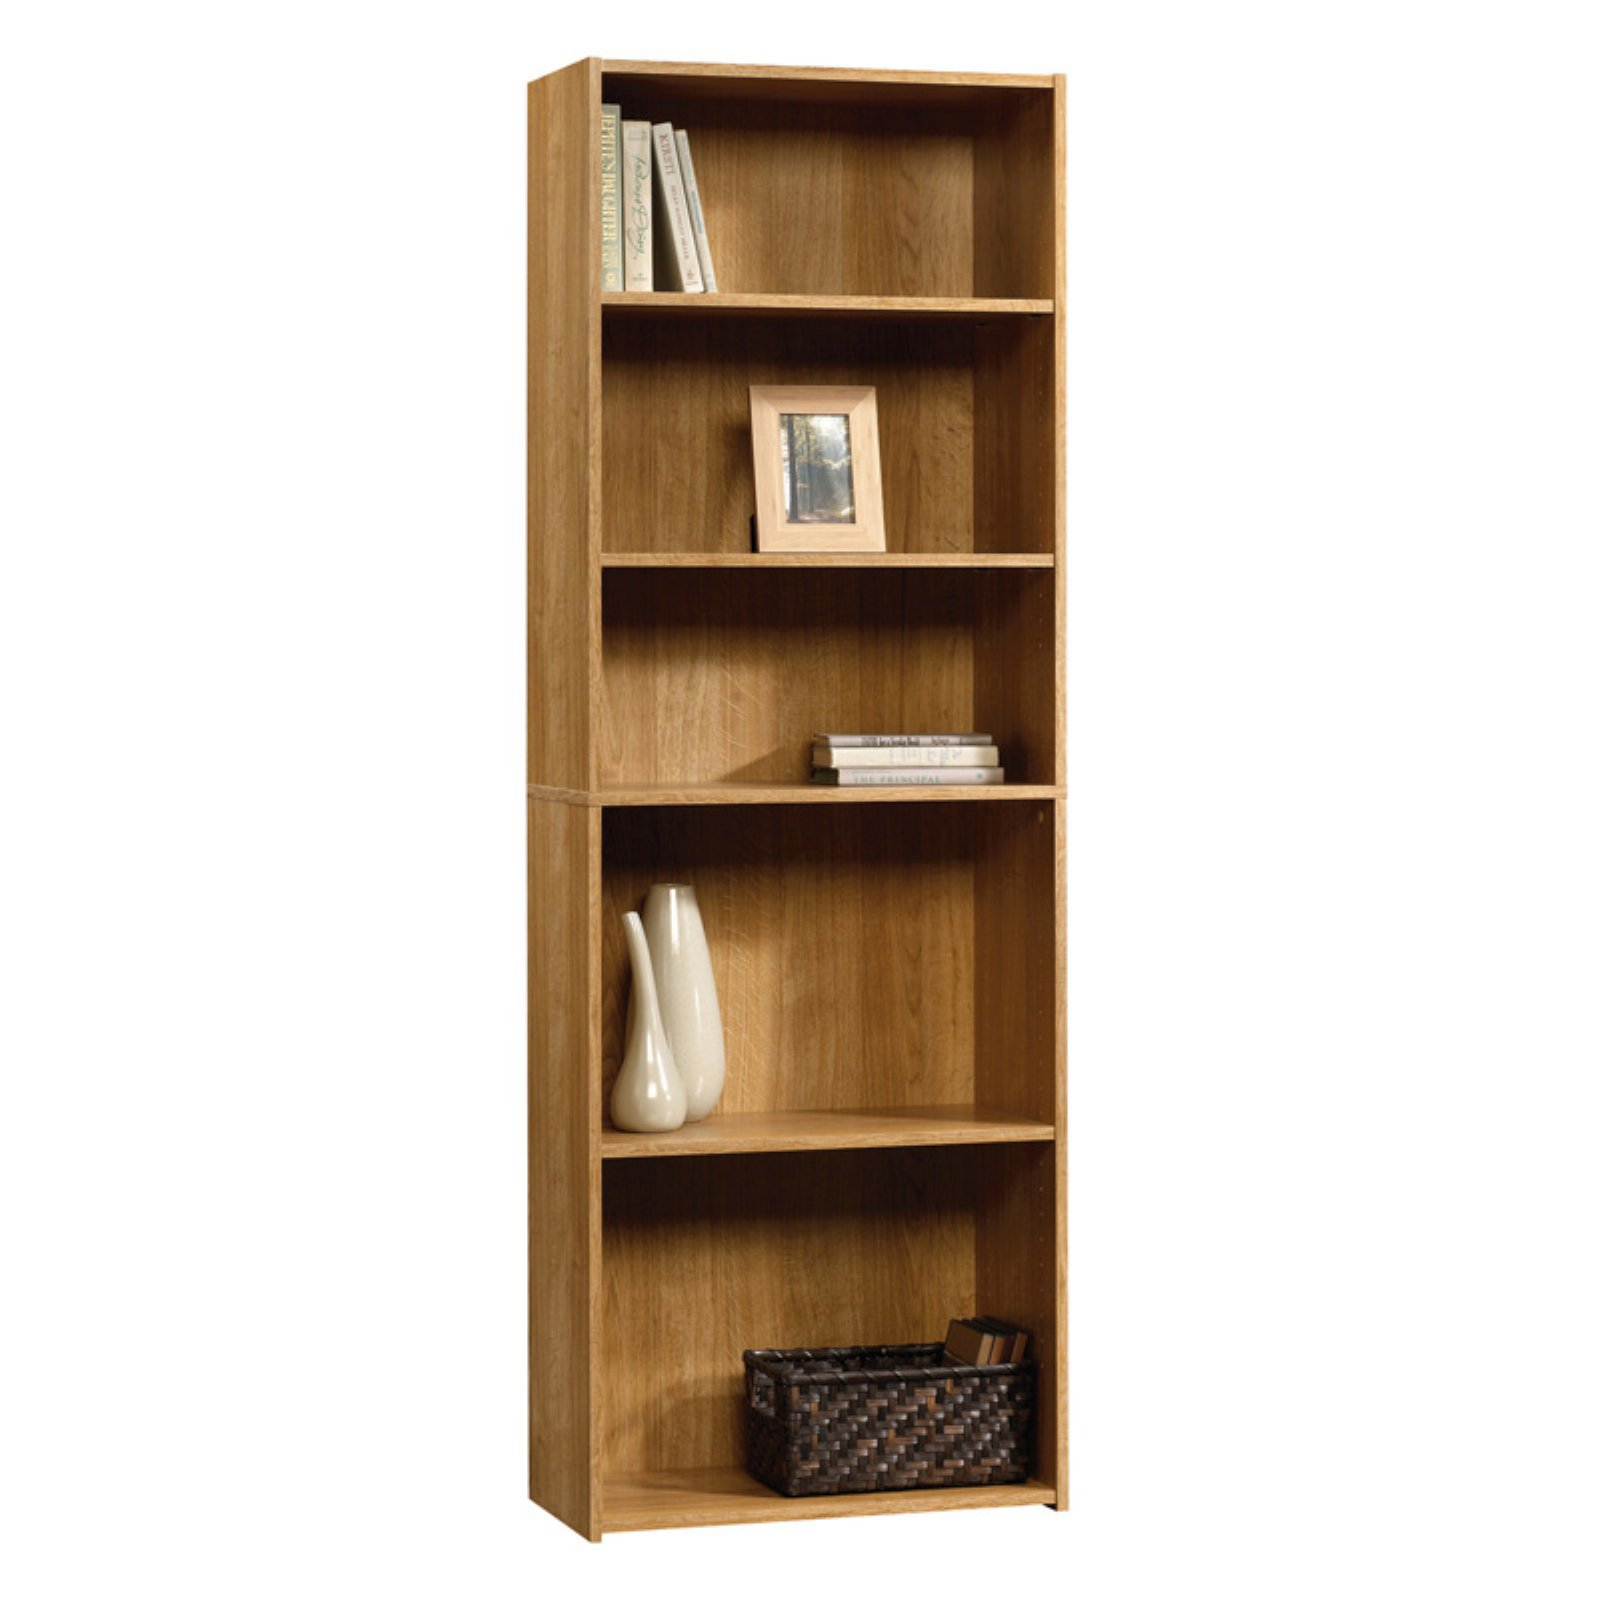 Sauder Beginnings 5 Shelf Bookcase, Highland Oak Finish